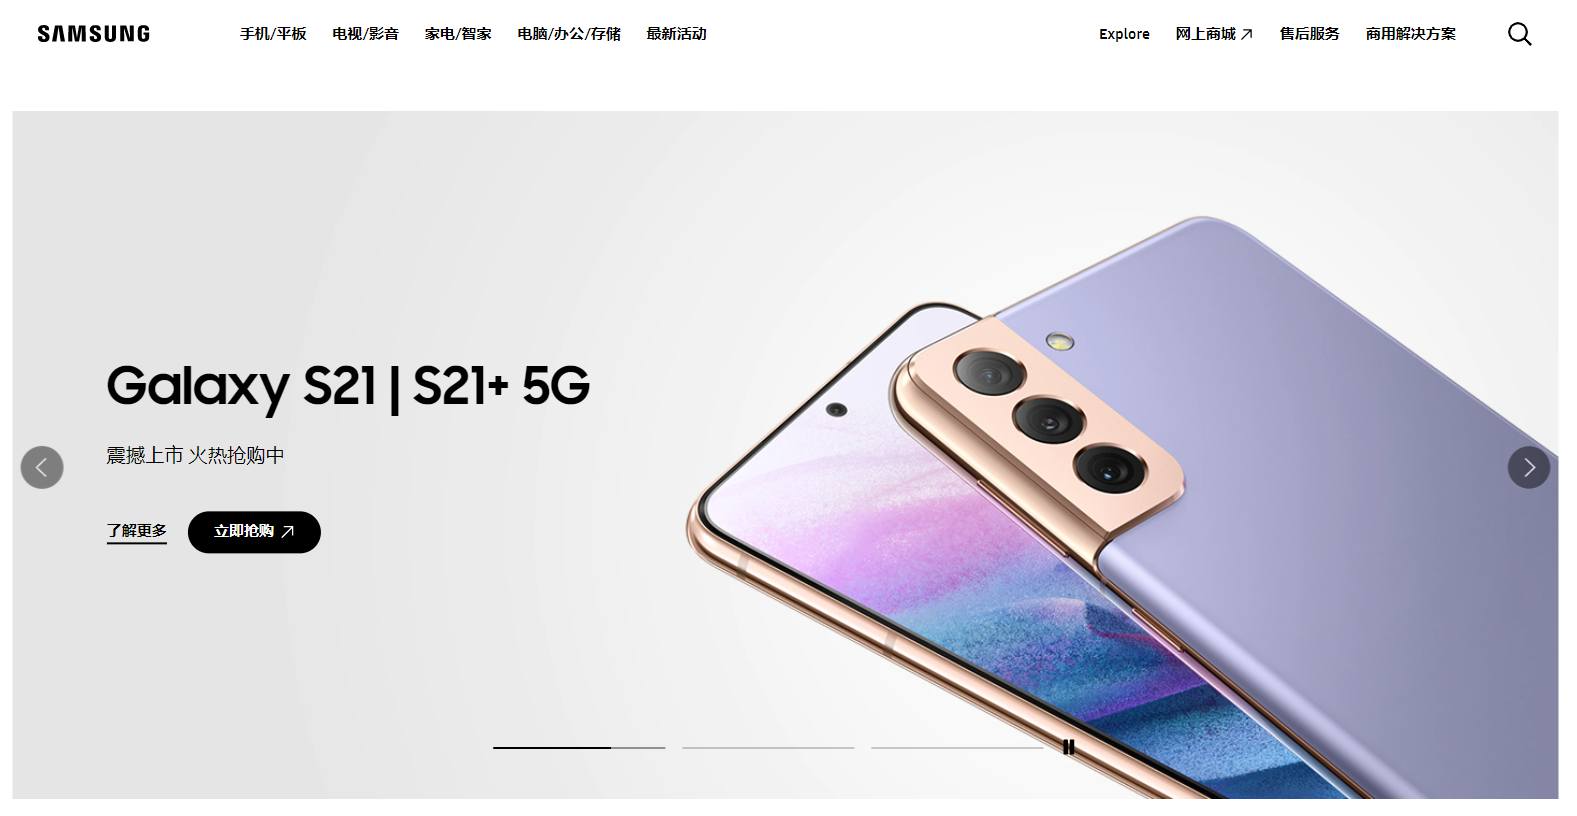 Things I Learned About Language Usage in Multilingual UI Design: Samsung home page in China